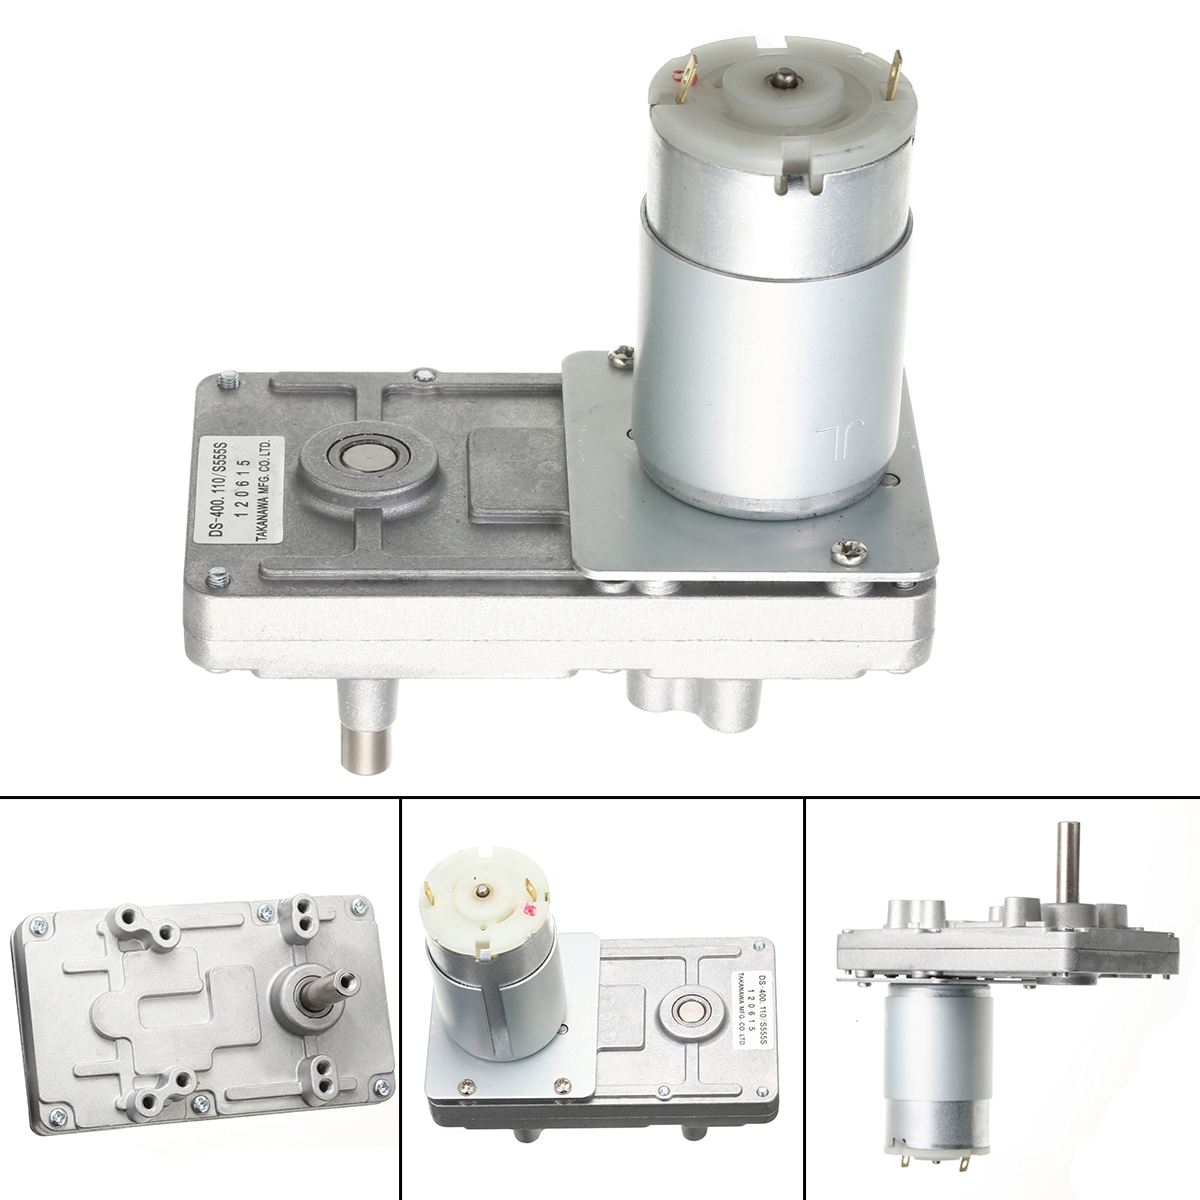 High Quality Reduction Gear Motor DC Motor <font><b>RS</b></font>-<font><b>555</b></font> Takanawa <font><b>555</b></font> Gear Motor Metal 12V-24V DC 2.5A High Torque Low Noise image